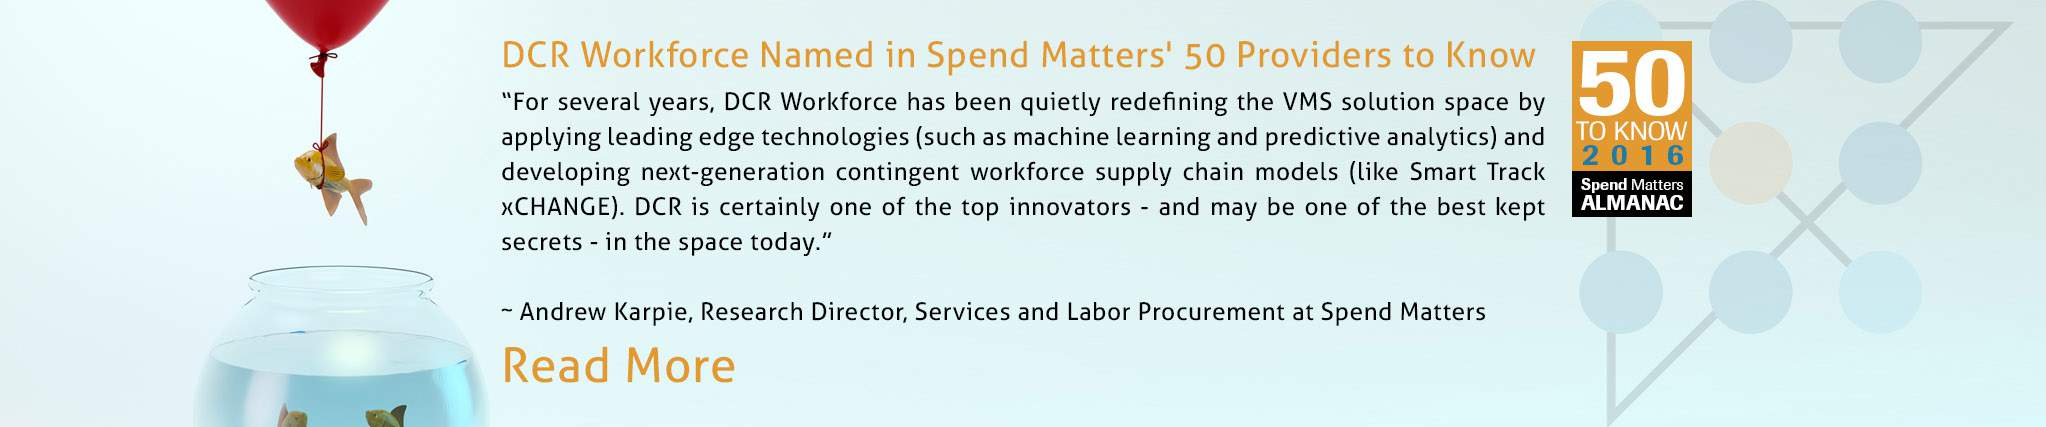 Spend Matters' 50 Providers